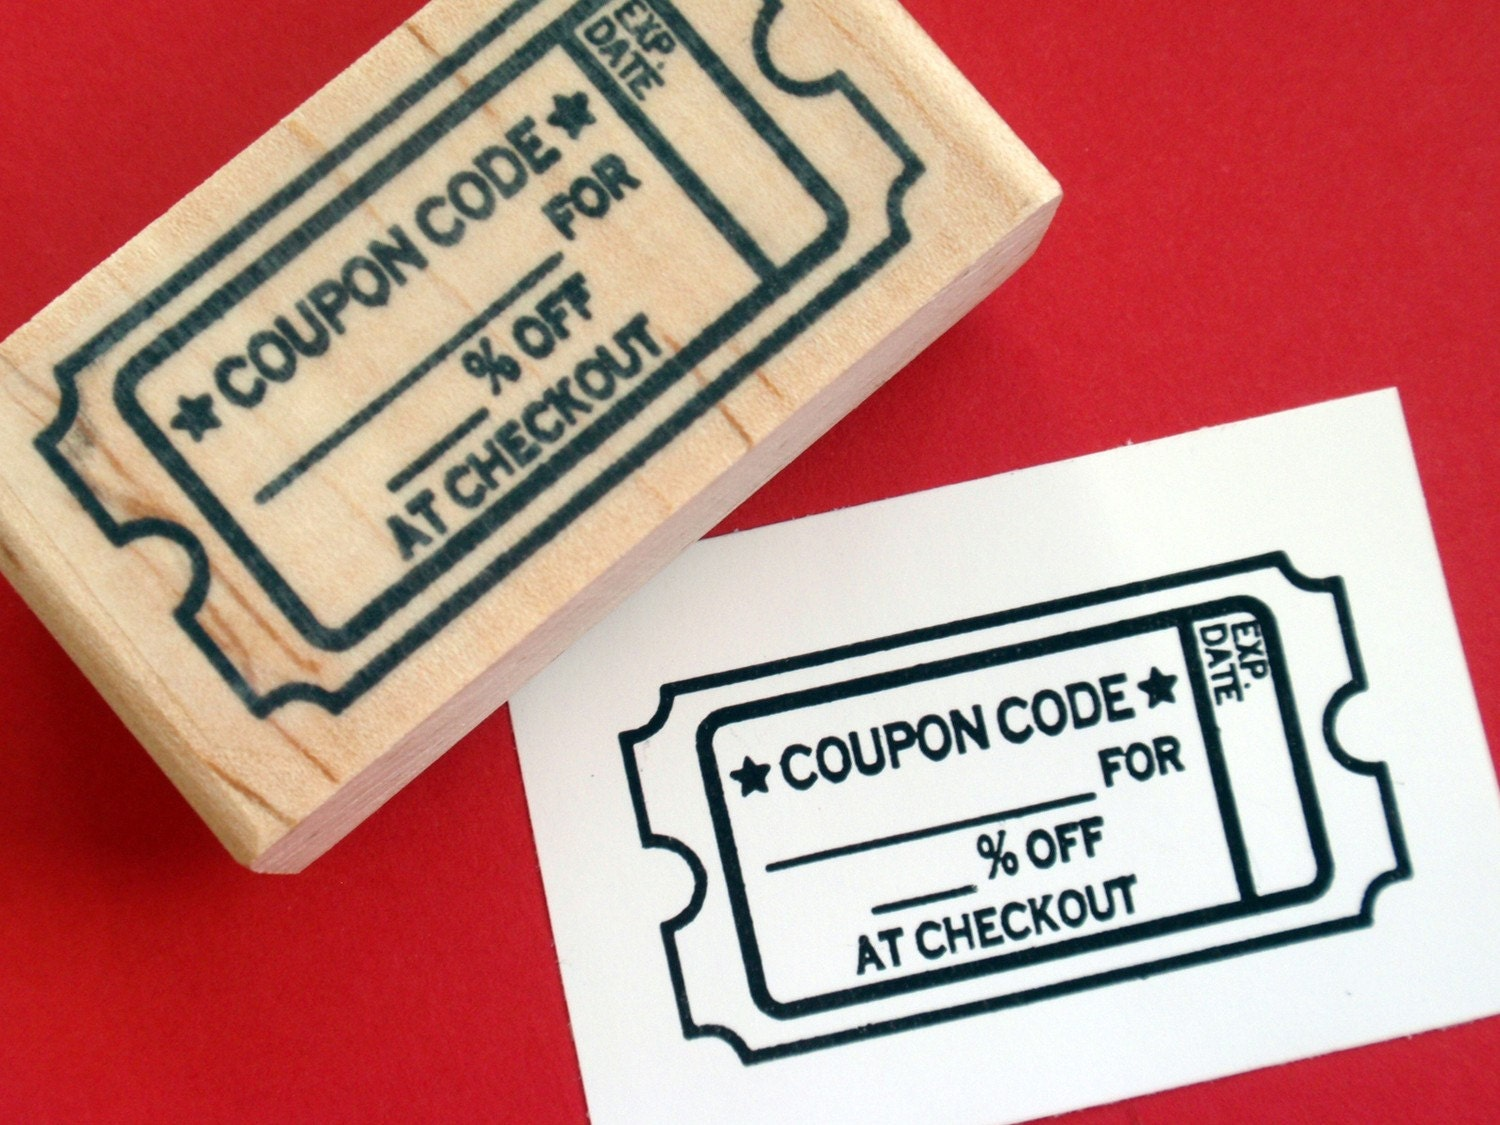 Usps stamp coupon code